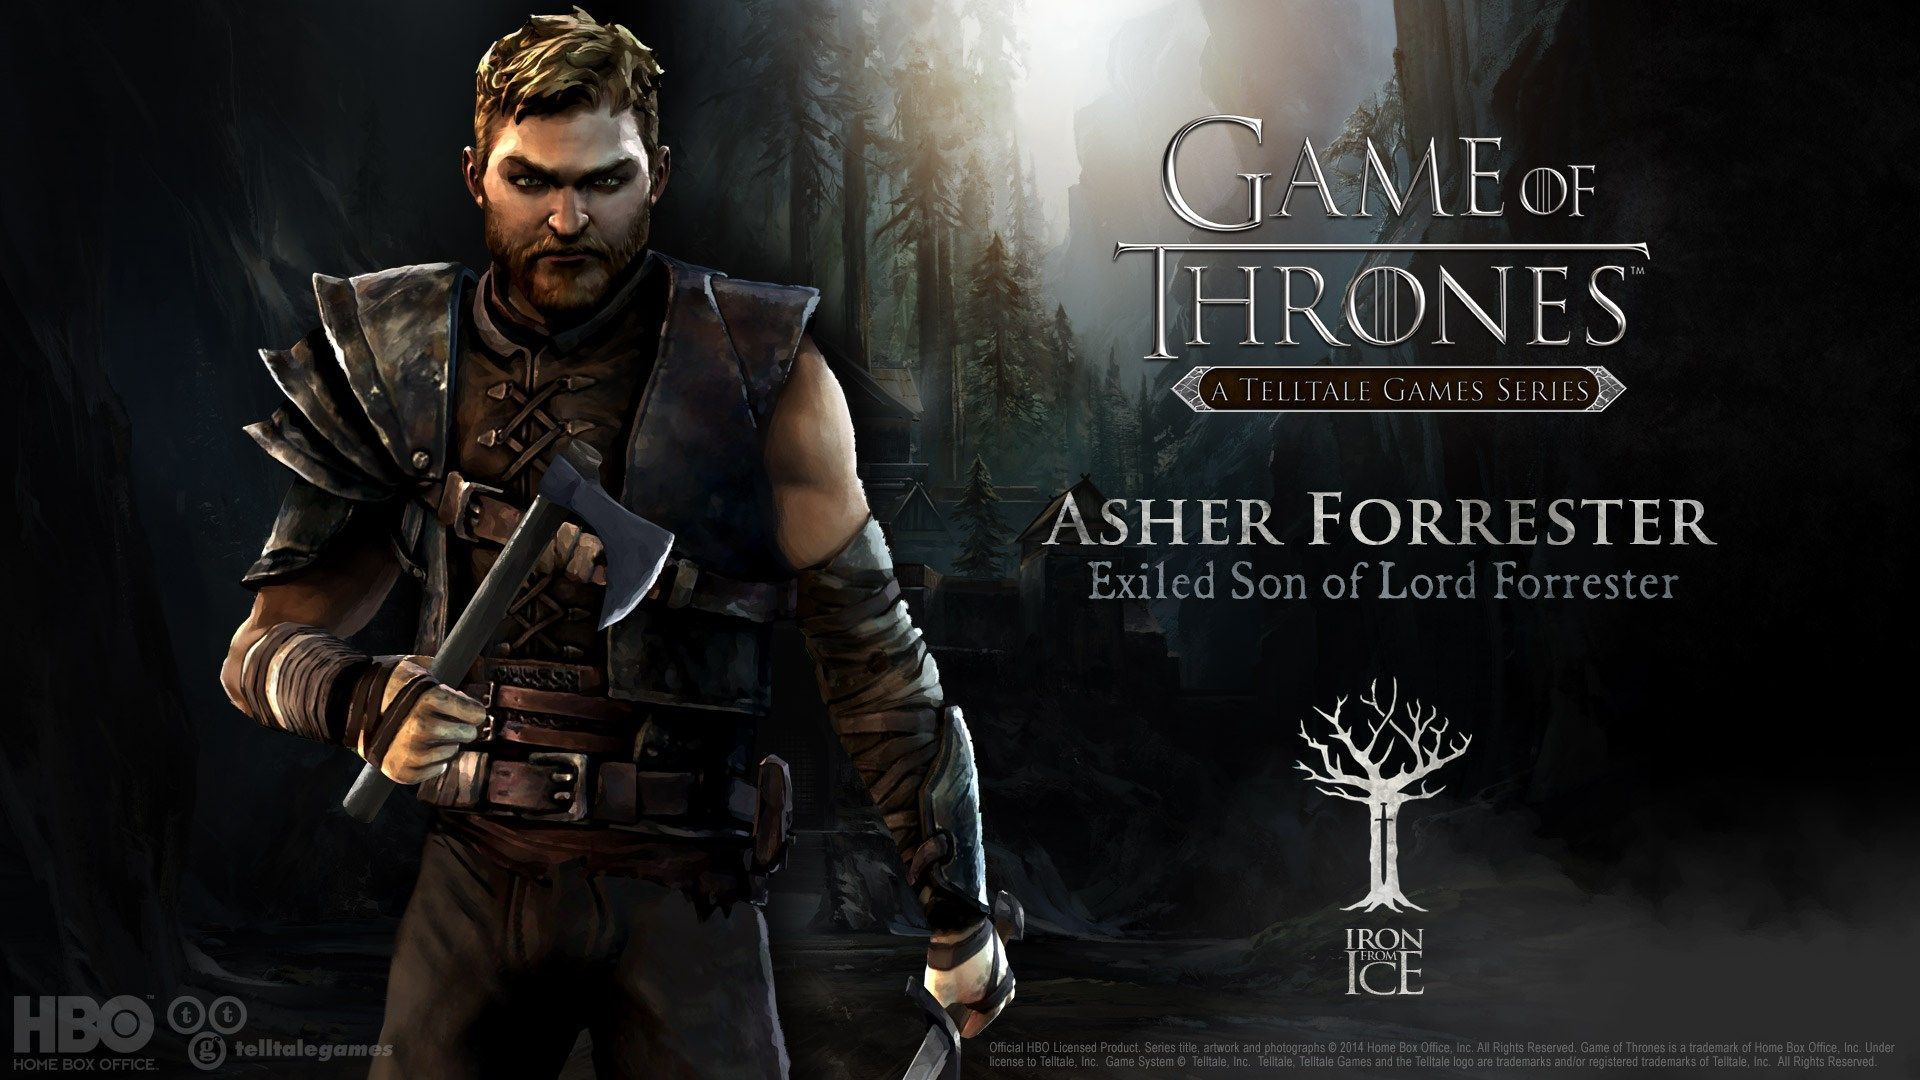 Widescreen Hd Game Of Thrones A Telltale Games Series Game Of Thrones Telltale Game Of Thrones Episodes Game Of Thrones Trailer